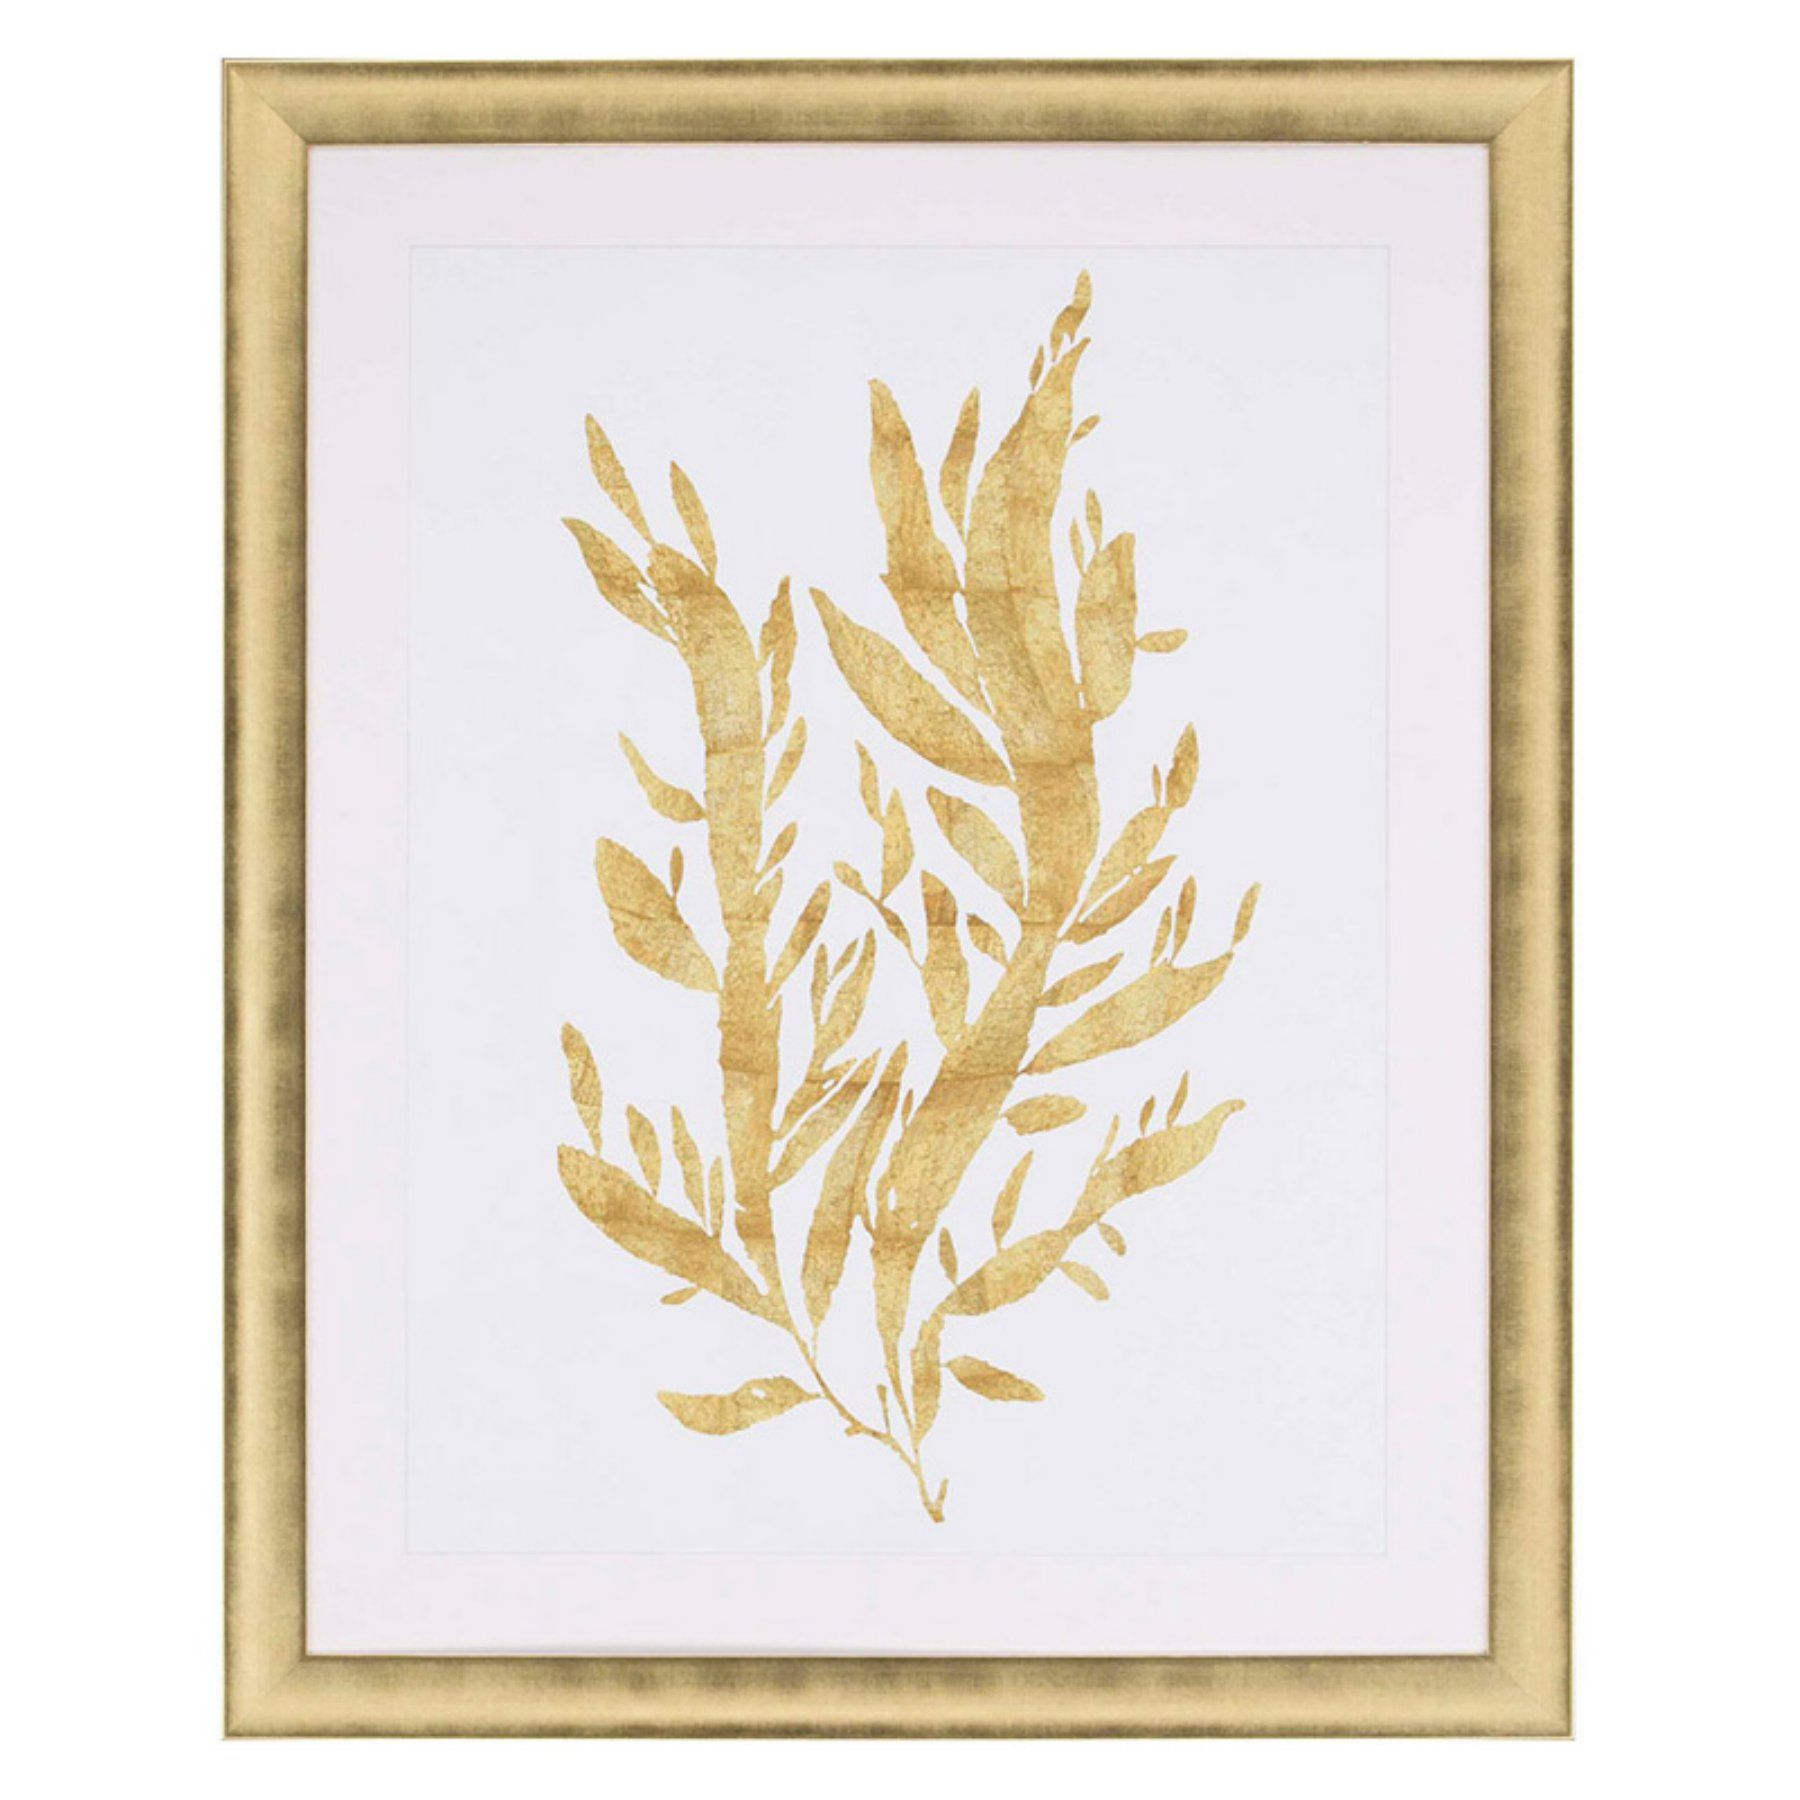 Paragon Decor Sea Life IV Framed Wall Art - 3376 | Products